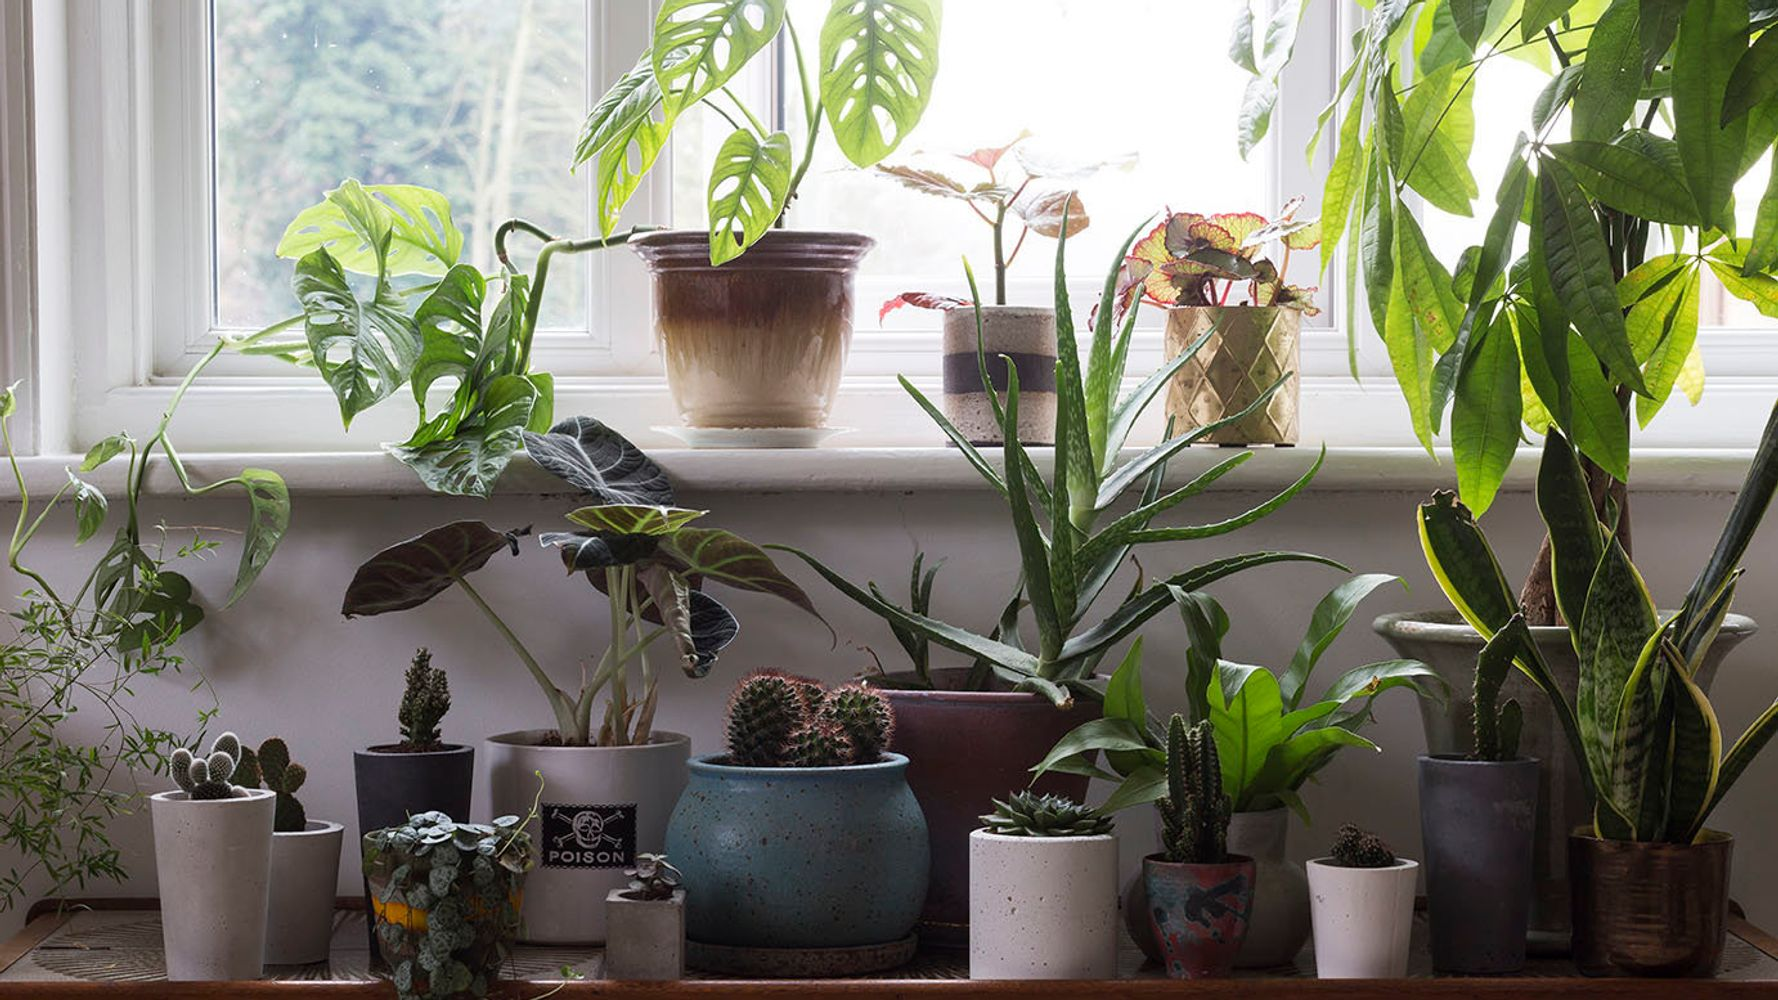 How To Turn Your Rented House Into An Urban Jungle ... Rainforest House Terrarium Plants on rainforest philodendron, rainforest animals plants, rainforest ferns, dart frogs plants, rock garden plants, rainforest carnivorous plants, rainforest water plants, rainforest banana trees, rainforest habitat plants, rainforest plants names, rainforest food plants, rainforest flowers, rainforest bedding, rainforest tree plants, rotten rainforest plants, rainforest ecosystem plants, rainforest swamp plants, rainforest elephant ears, rainforest tropical plants, rainforest green plants,